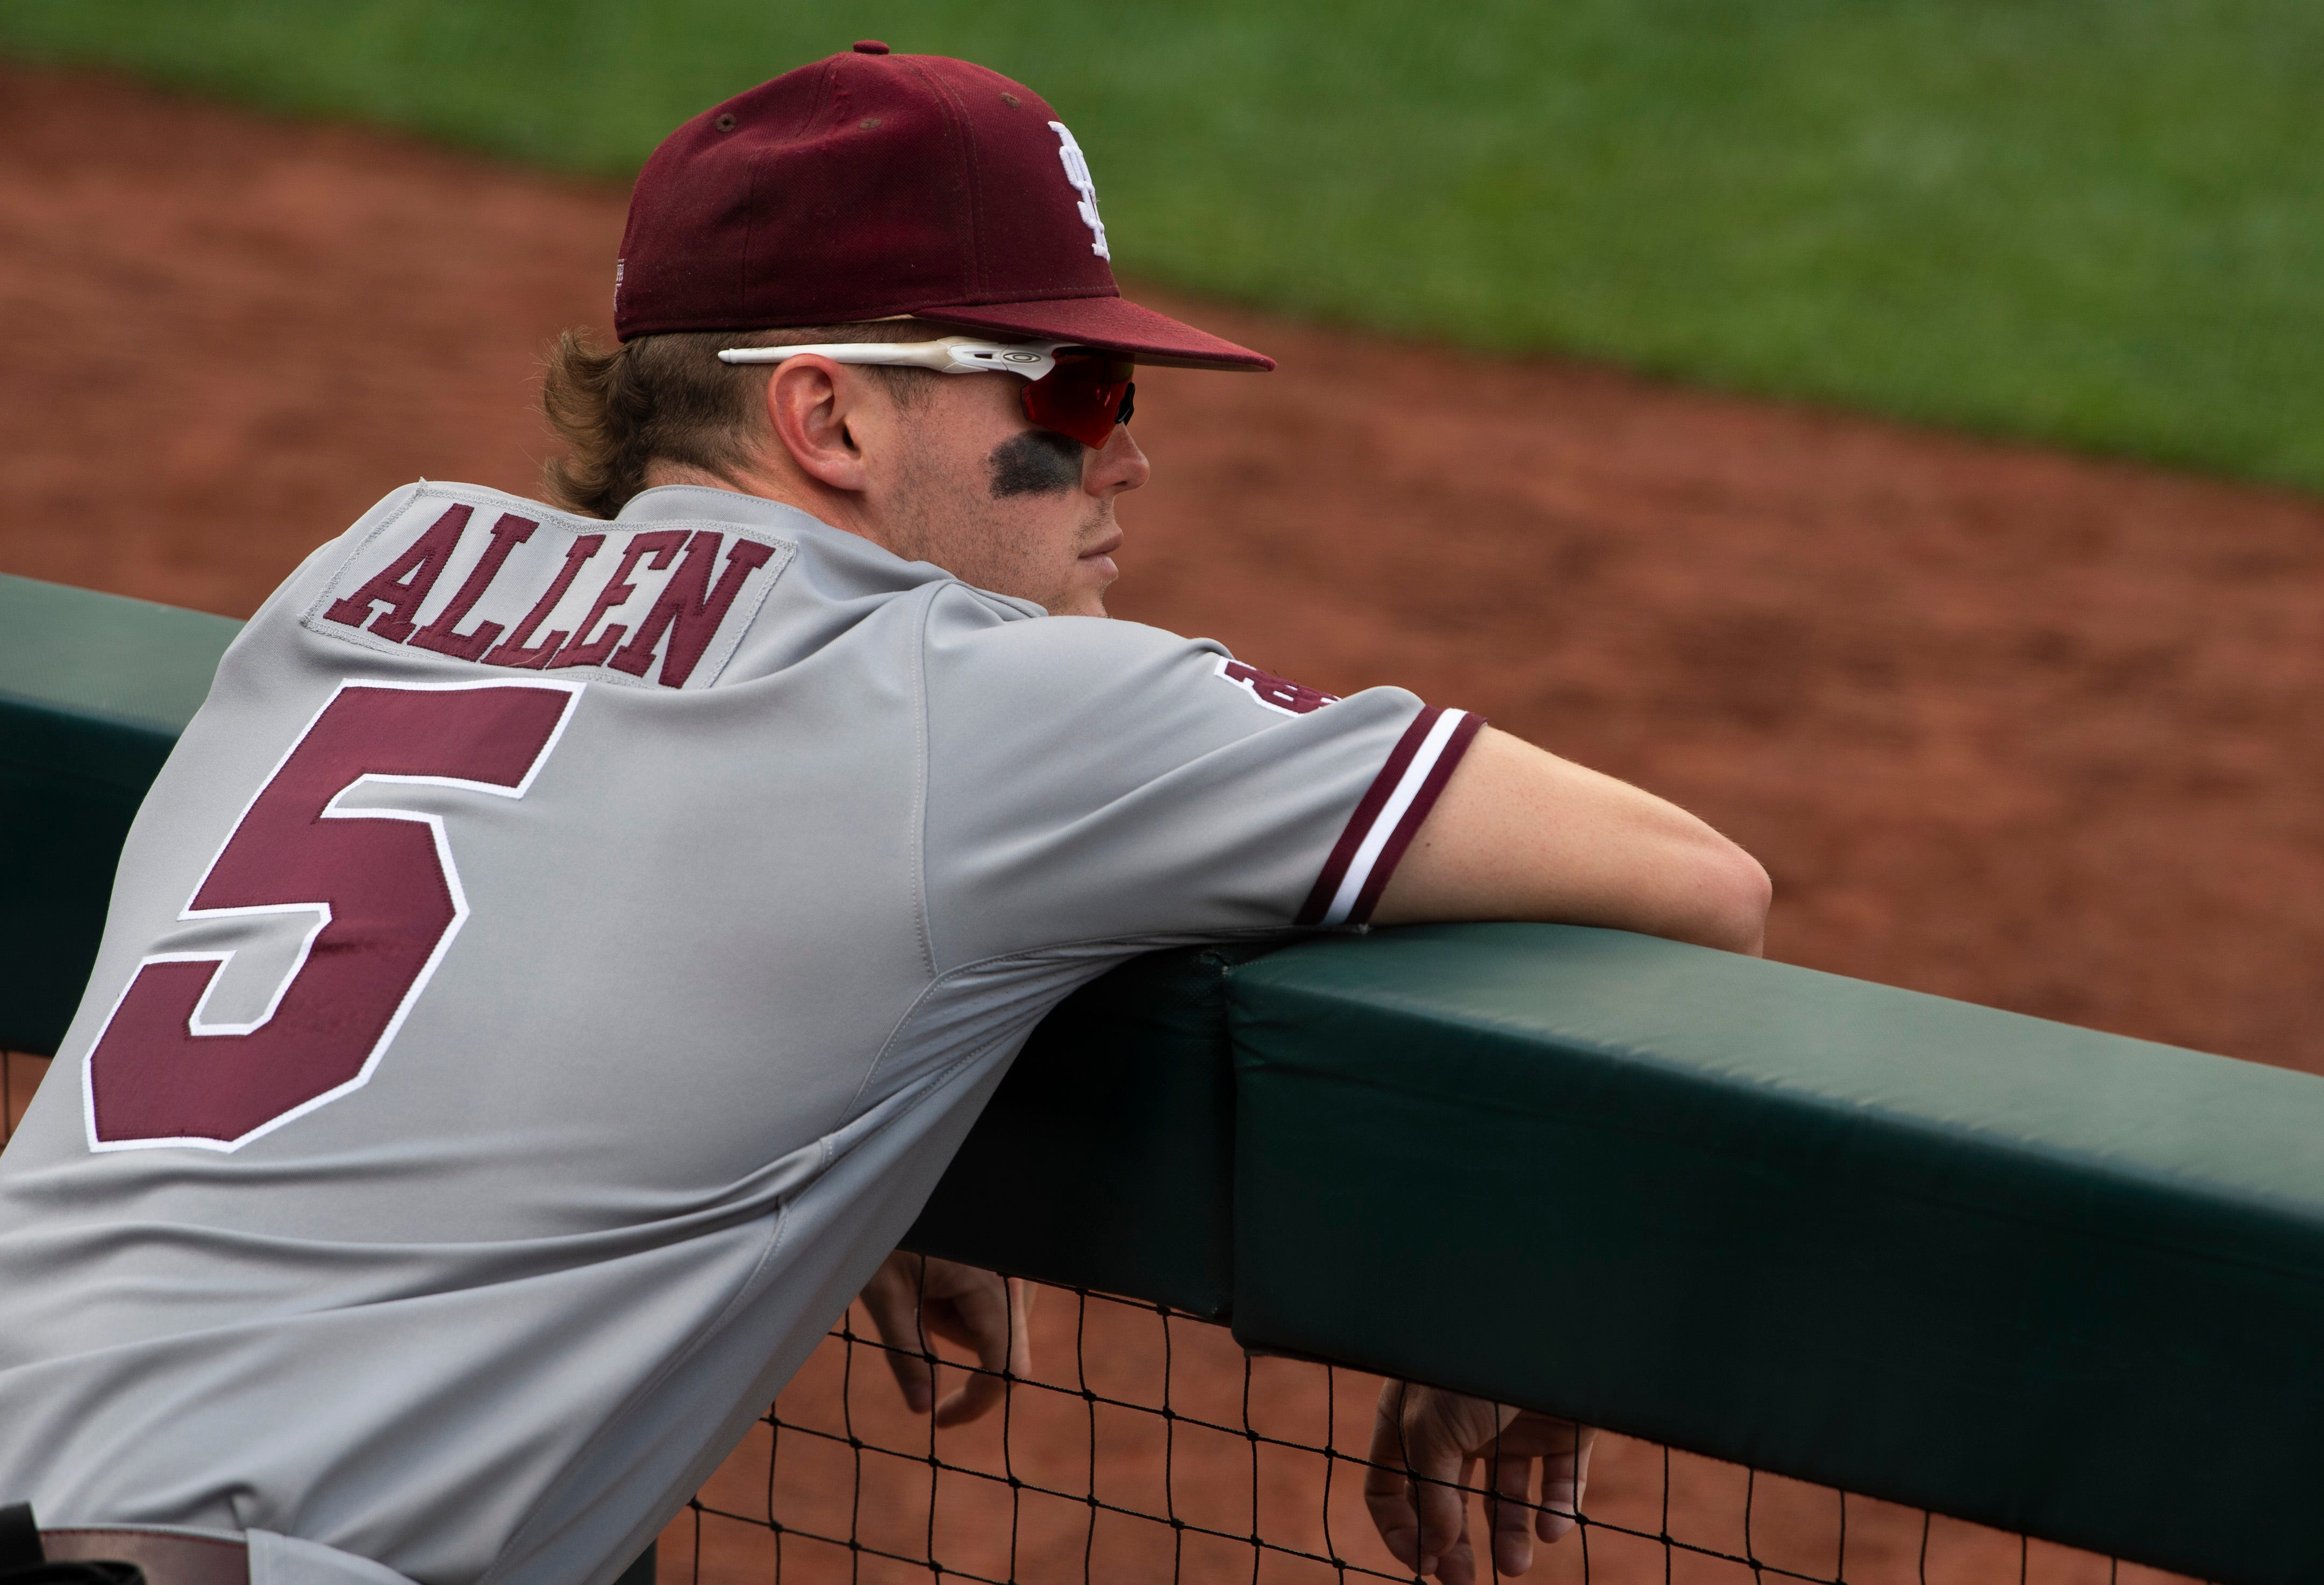 Mississippi St. right fielder Tanner Allen (5) looks out onto the field before their game against Texas in the NCAA Men s College World Series at TD Ameritrade Park